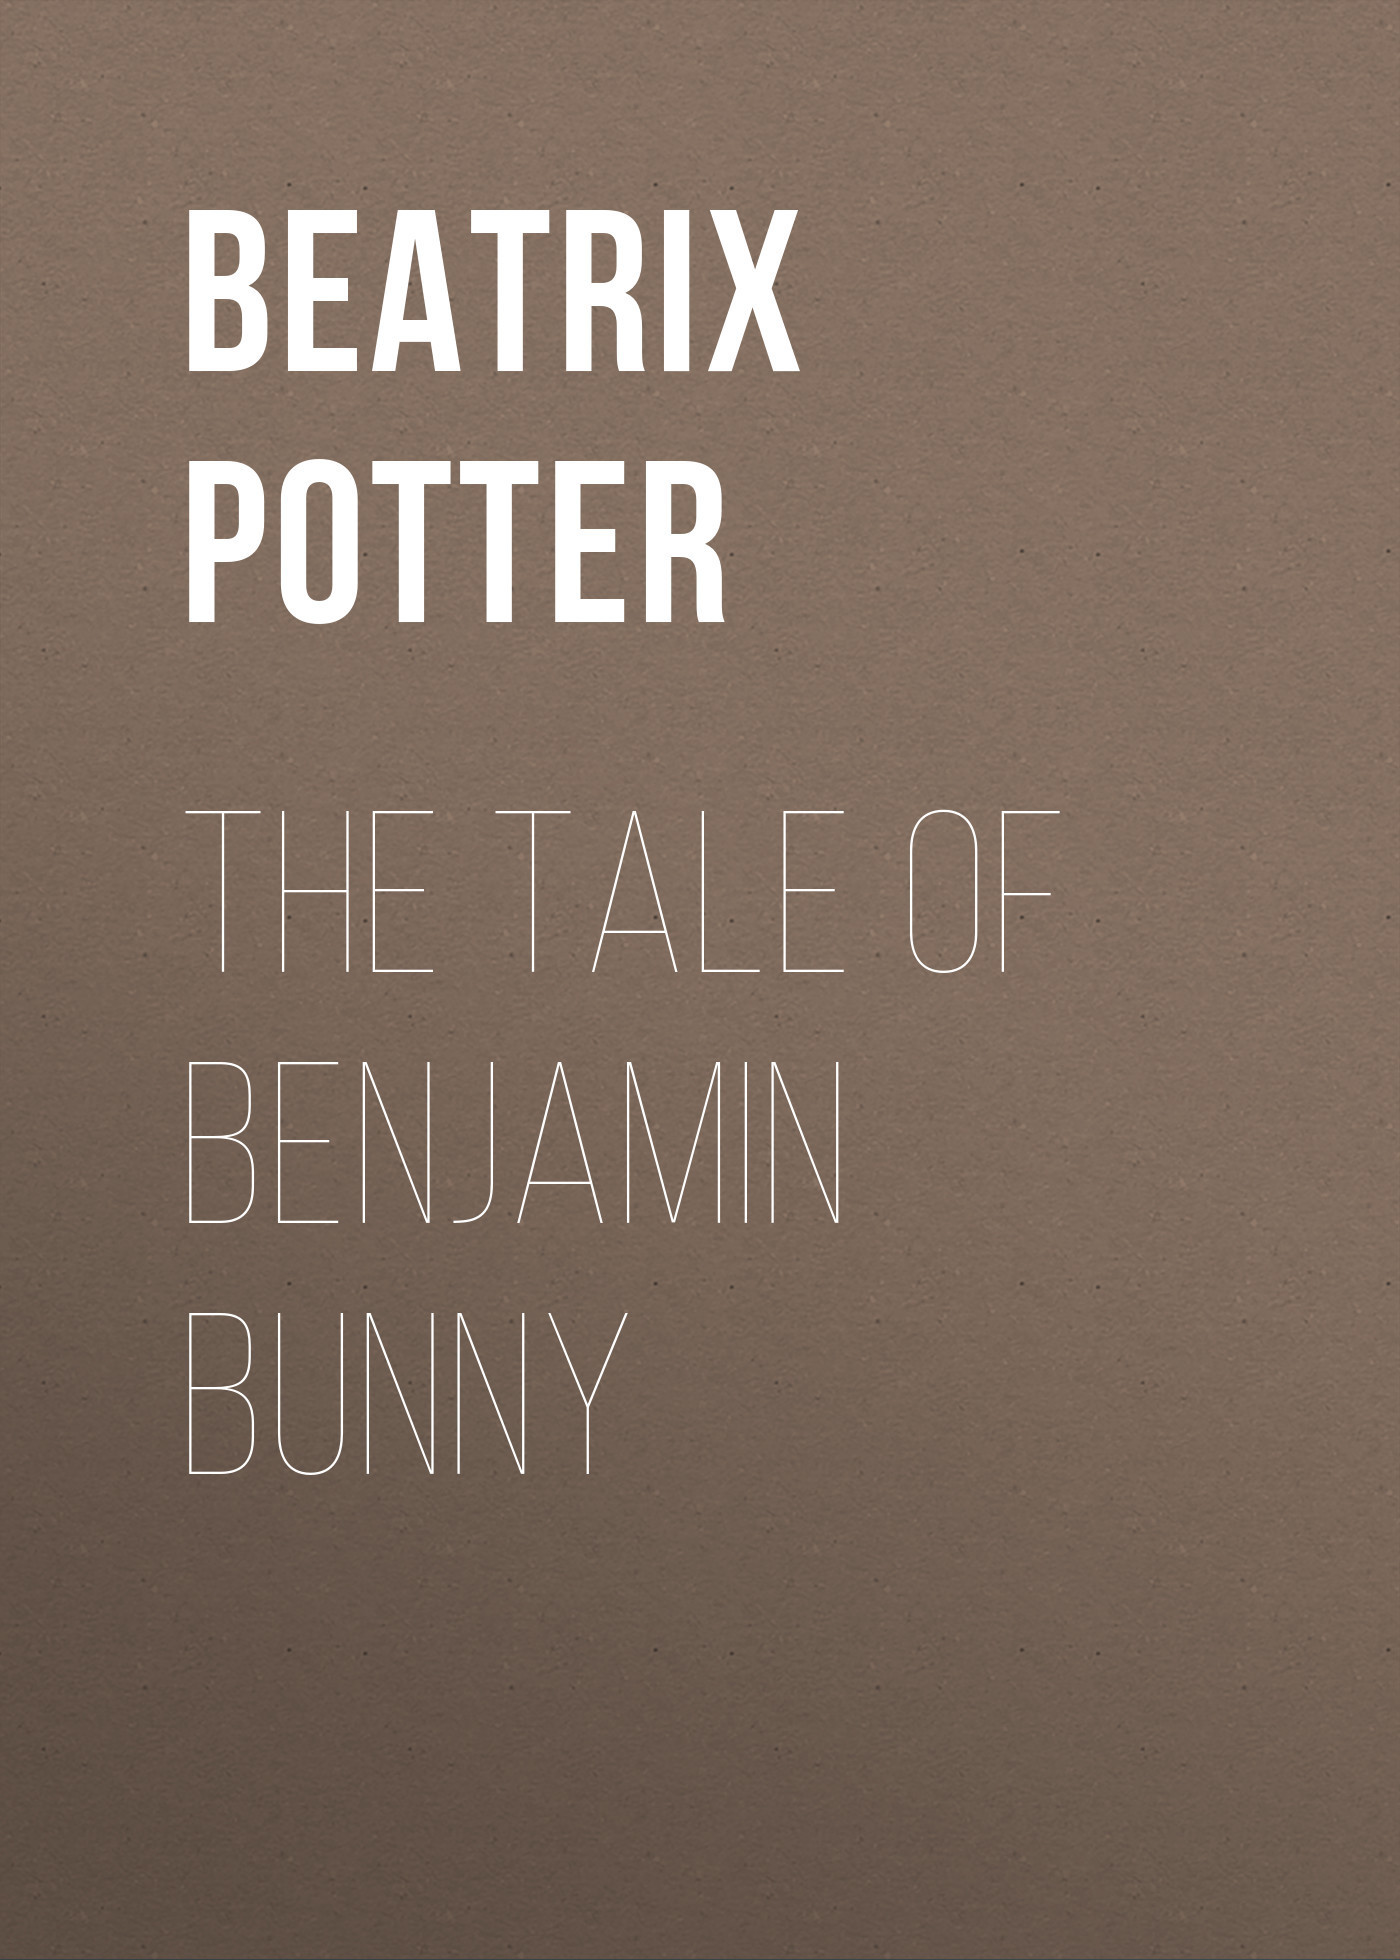 Беатрис Поттер The Tale of Benjamin Bunny wheatley henry benjamin prices of books